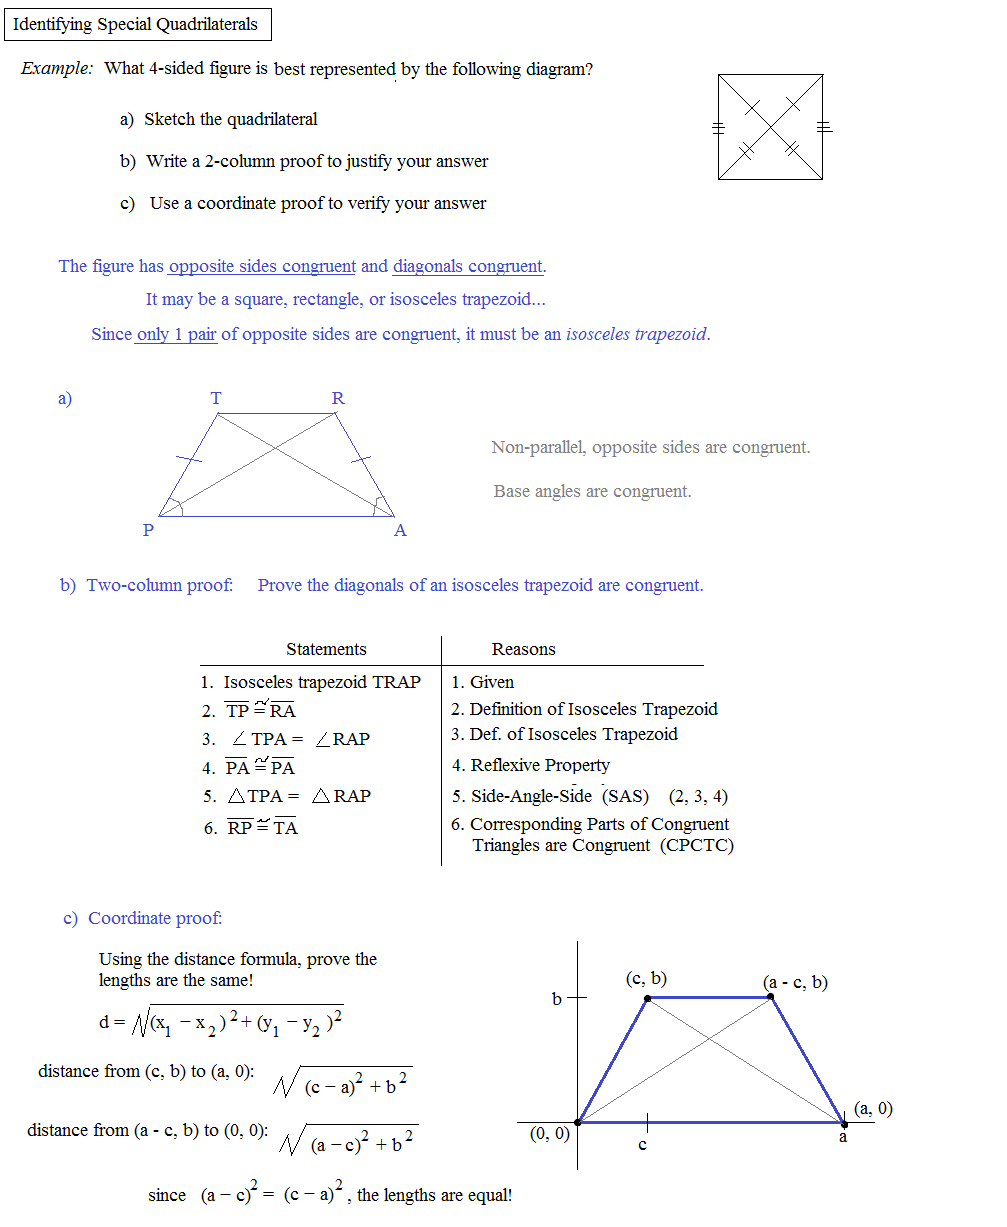 worksheet Define Reflexive Property math plane special quadrilaterals 1 introduction identifying isosceles trapezoid proofs utilizing properties